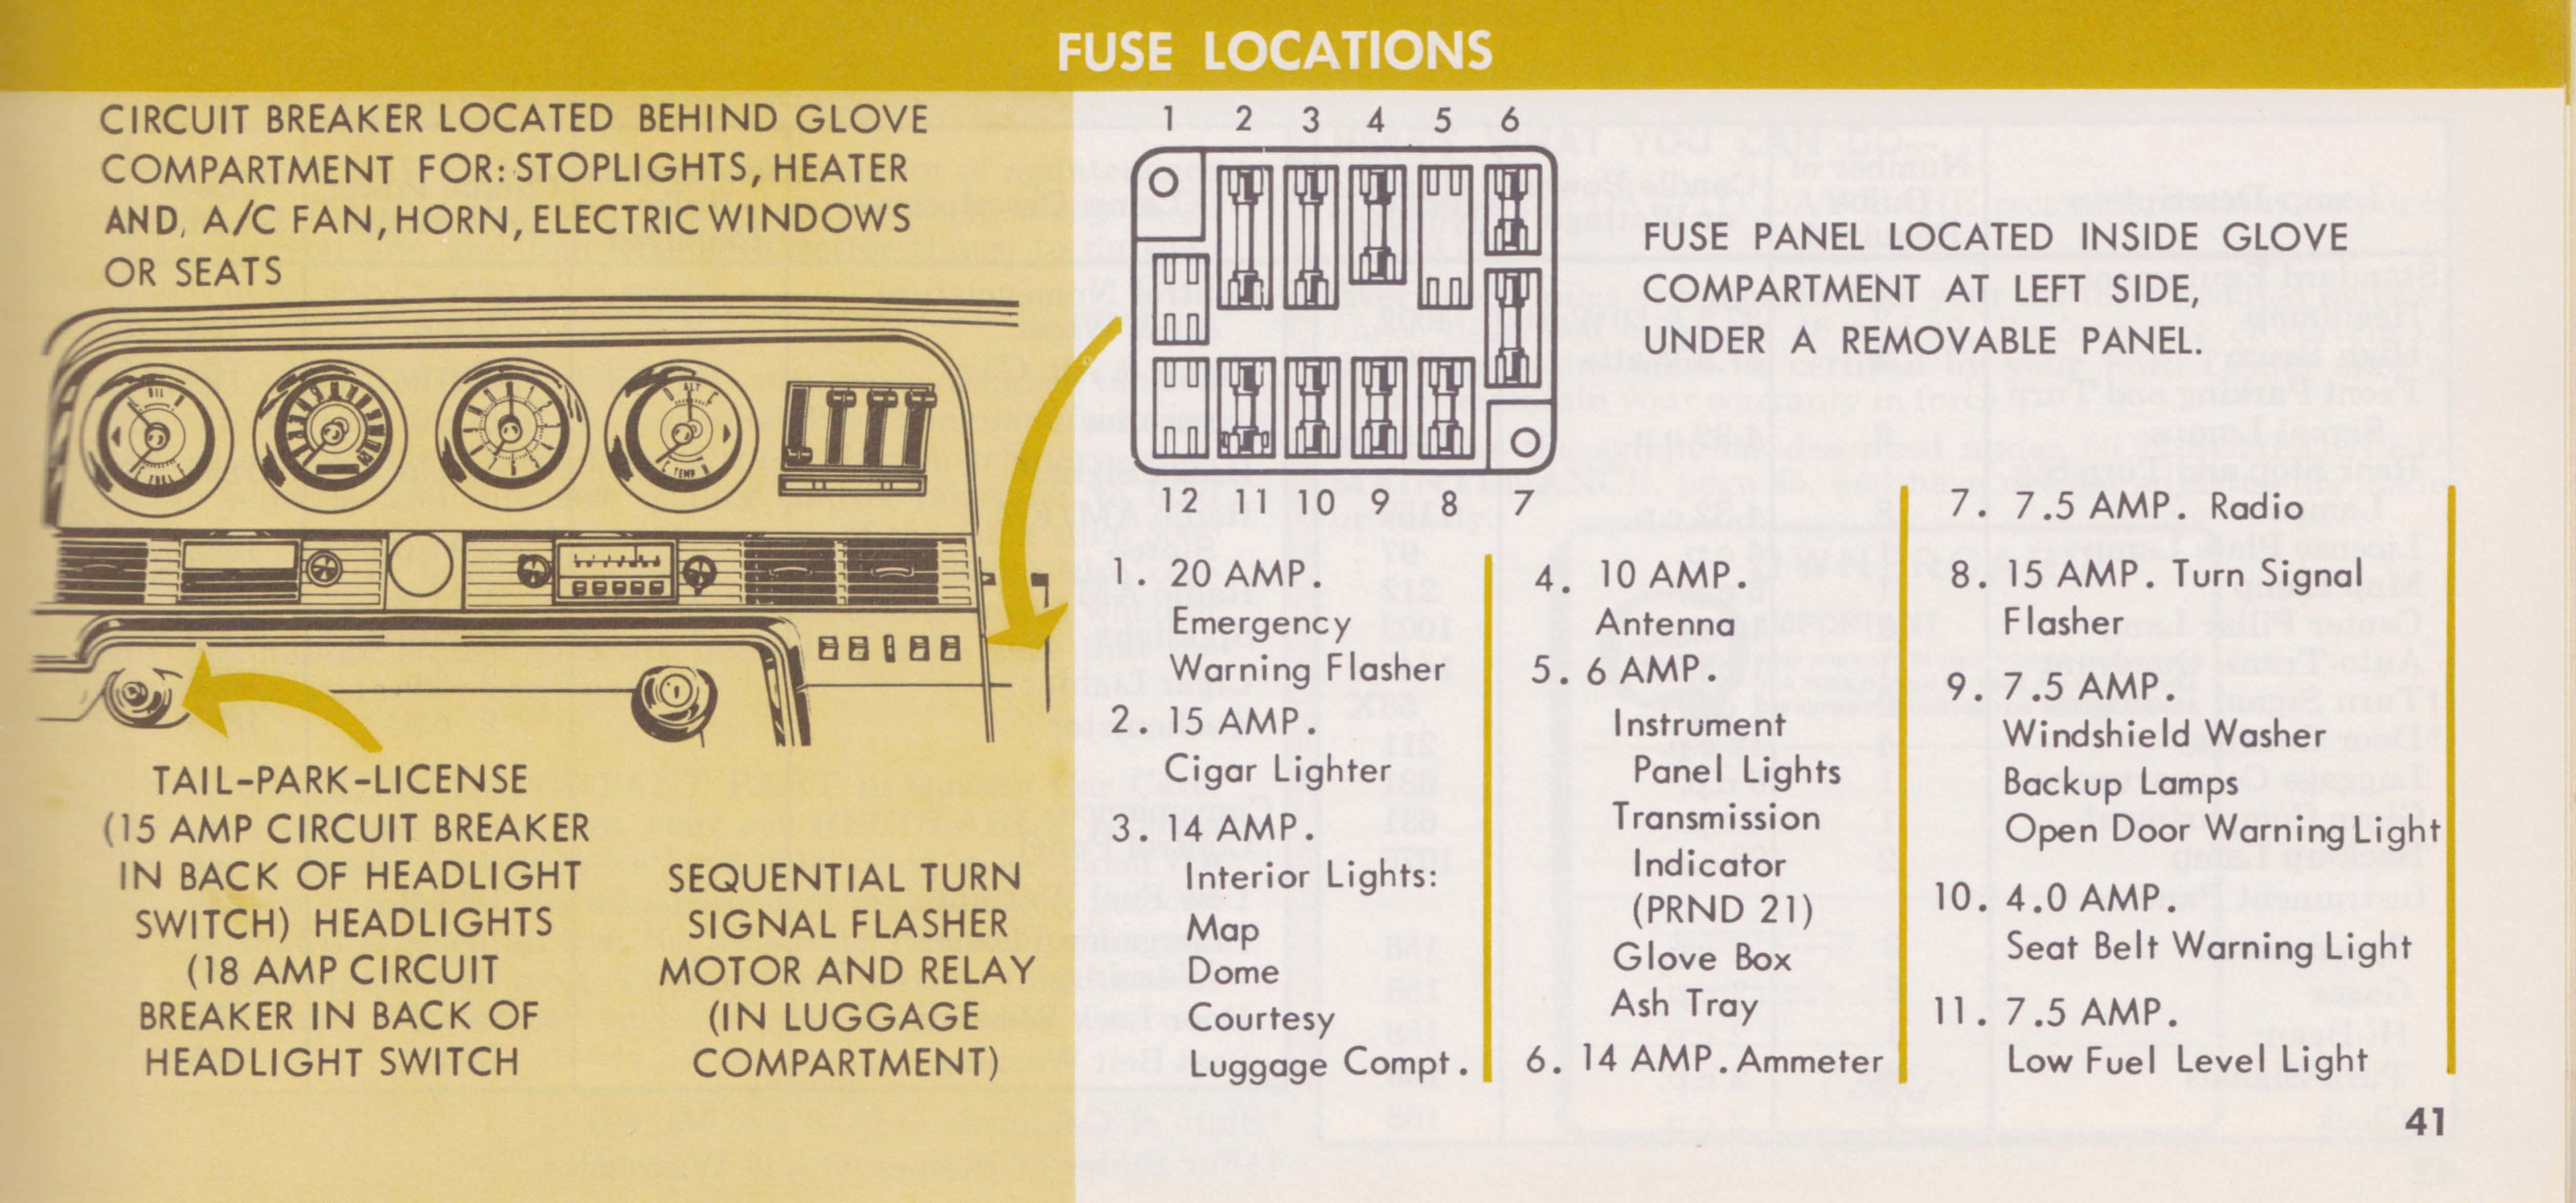 Ford Thunderbird Owners Manual Pdf Download 2003 Fuse Box Tagsford 2004 Downloadford Downloadservice Fusion 2006